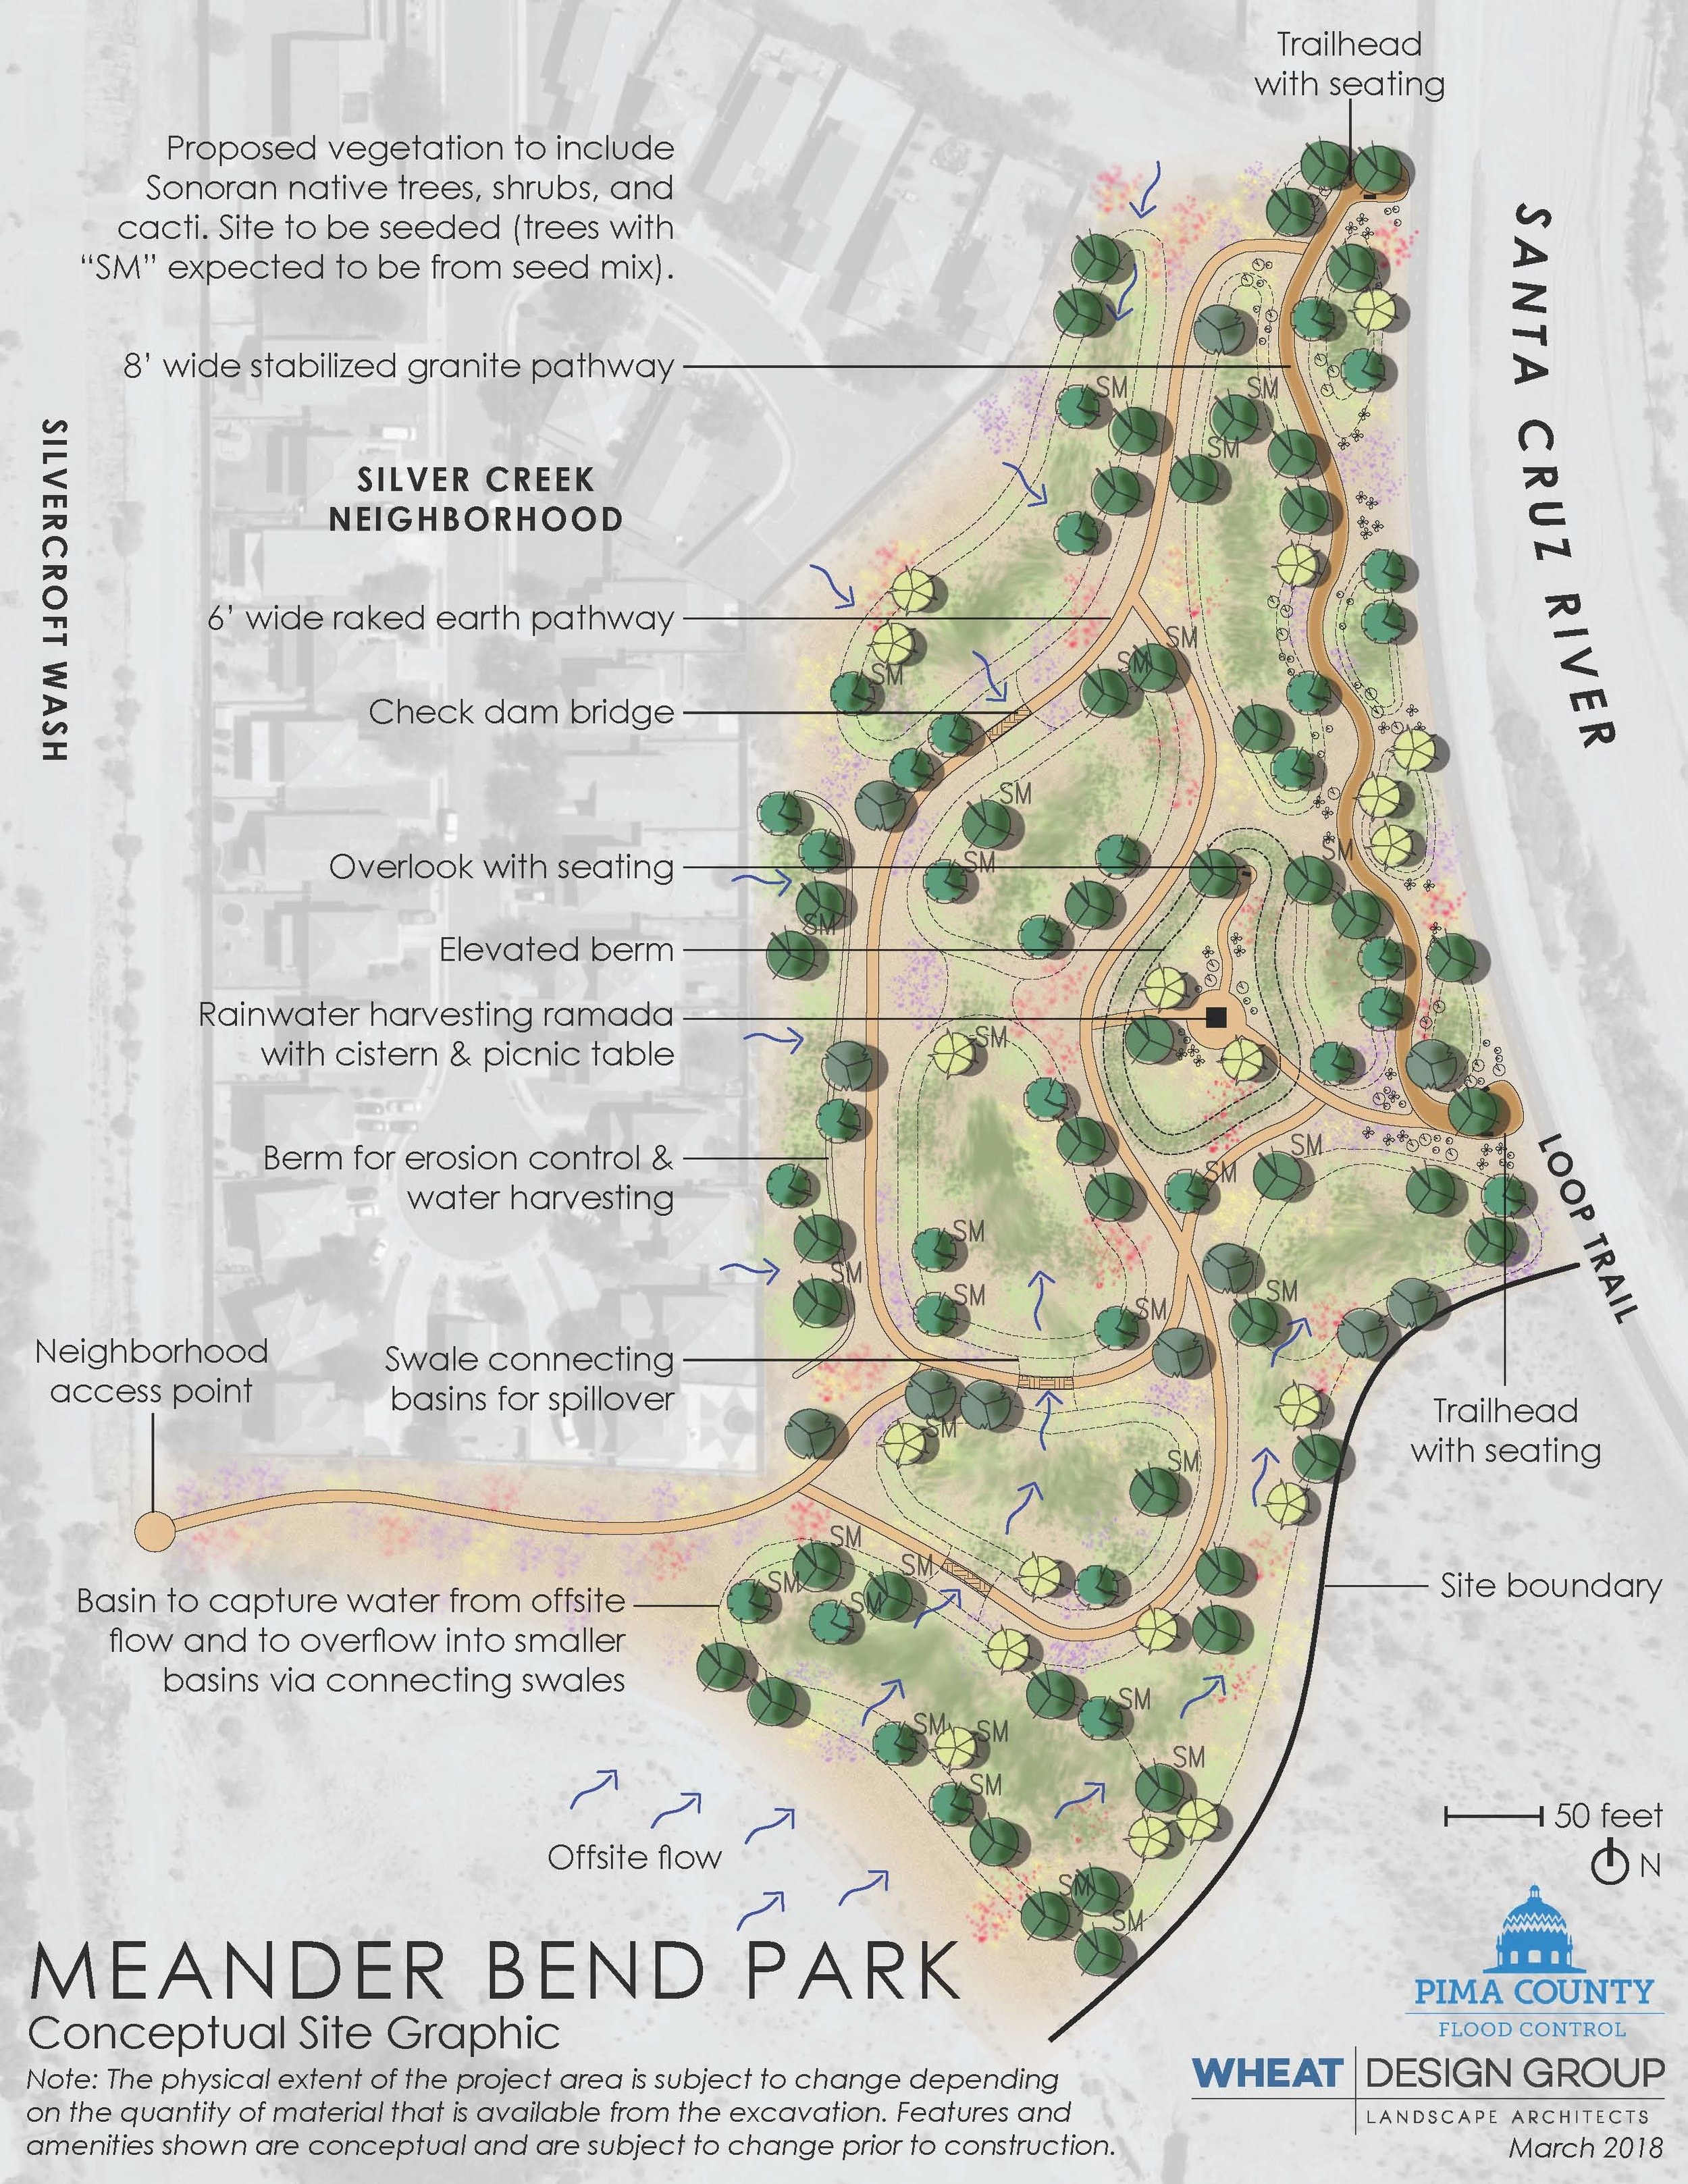 Pictured Above: The conceptual plan view rendering of Meander Bend Park.